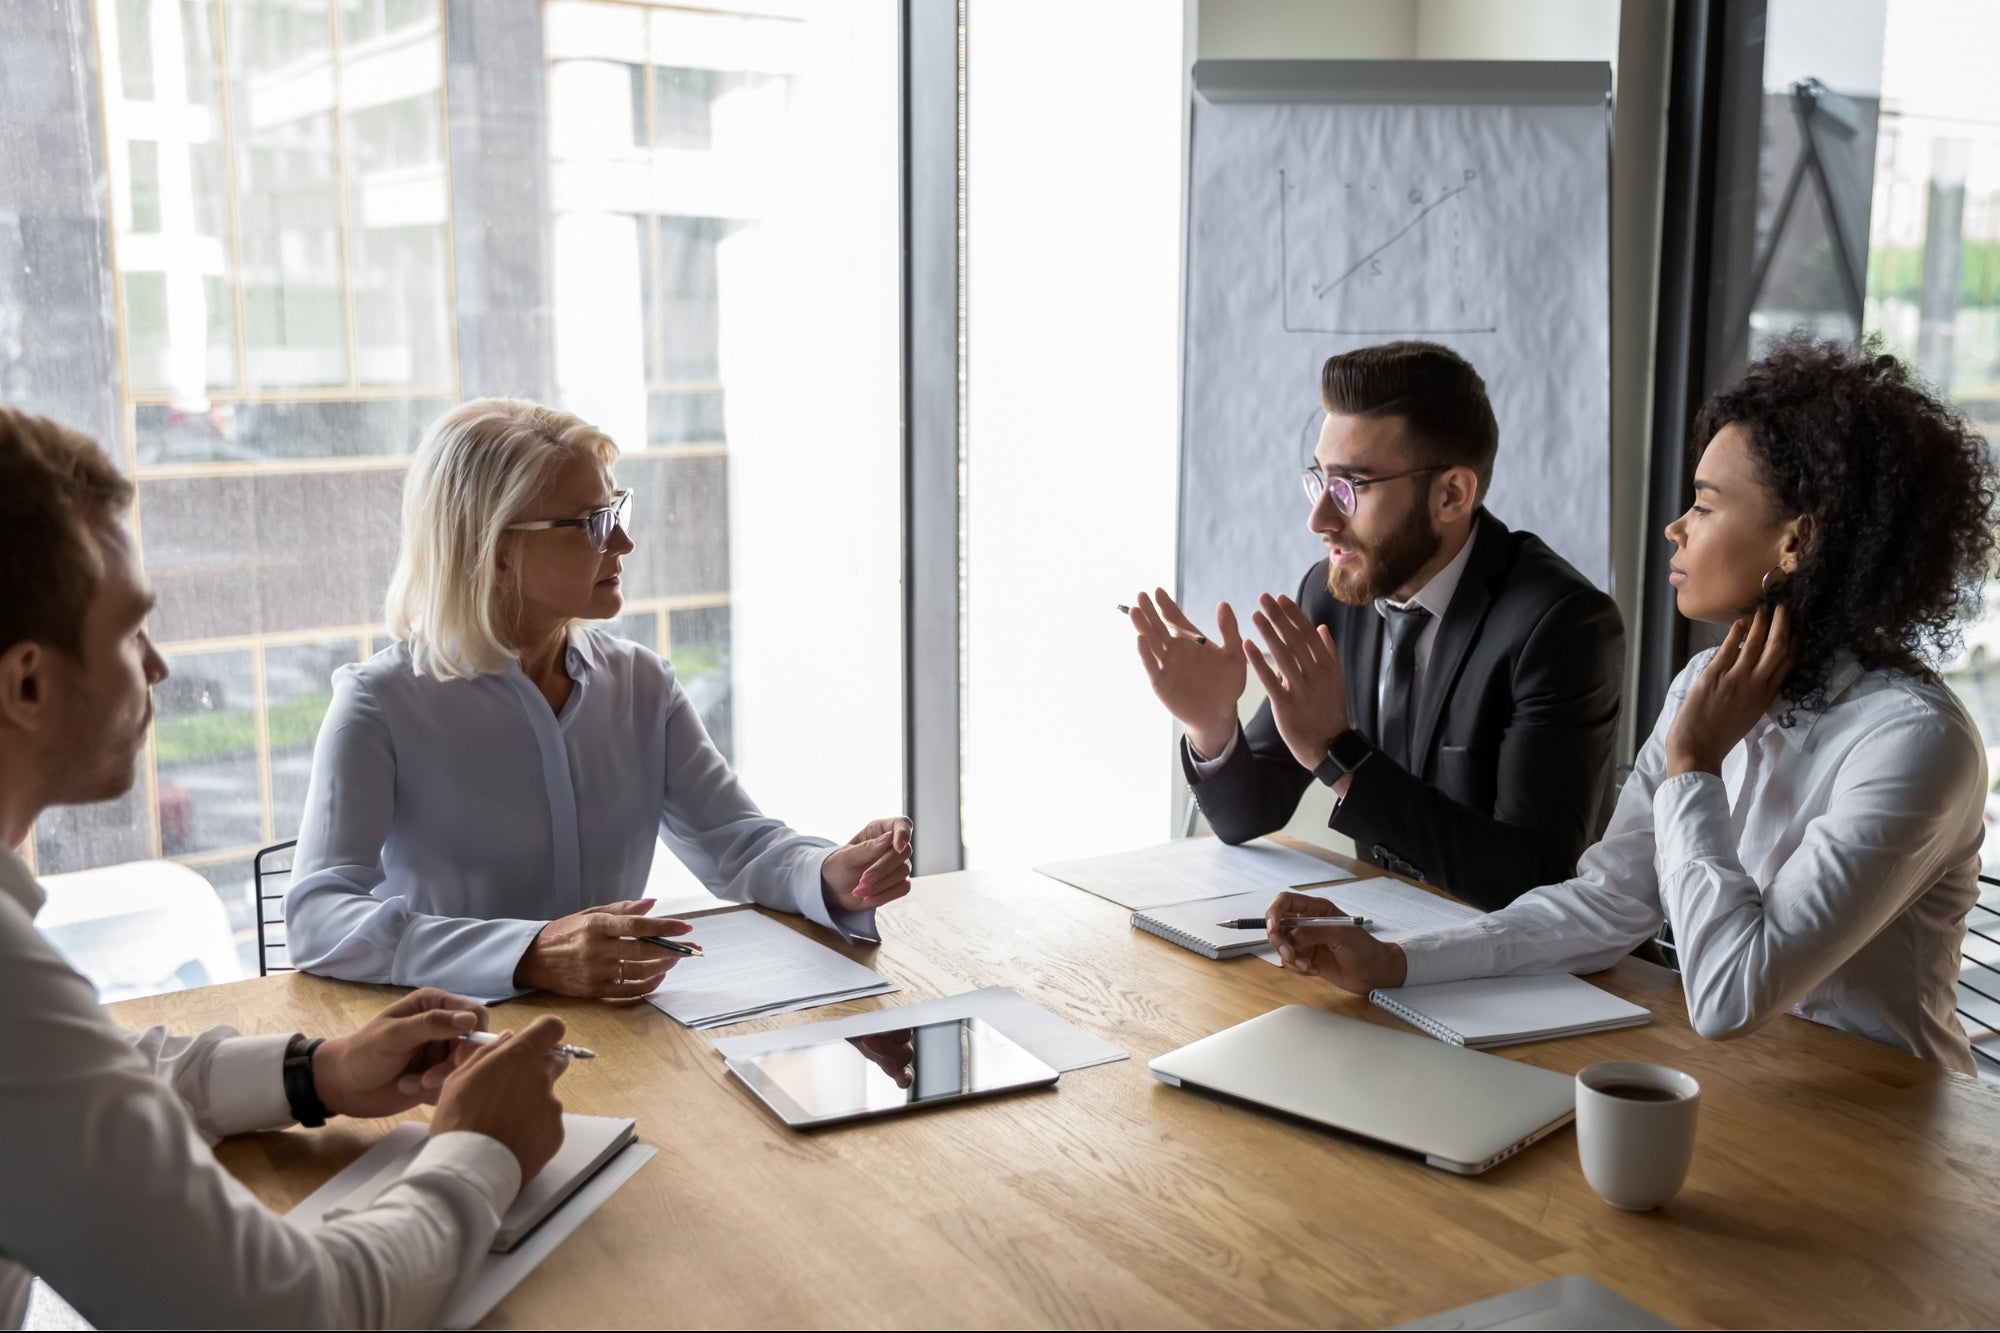 7 Negotiation Tactics for Getting What You Deserve